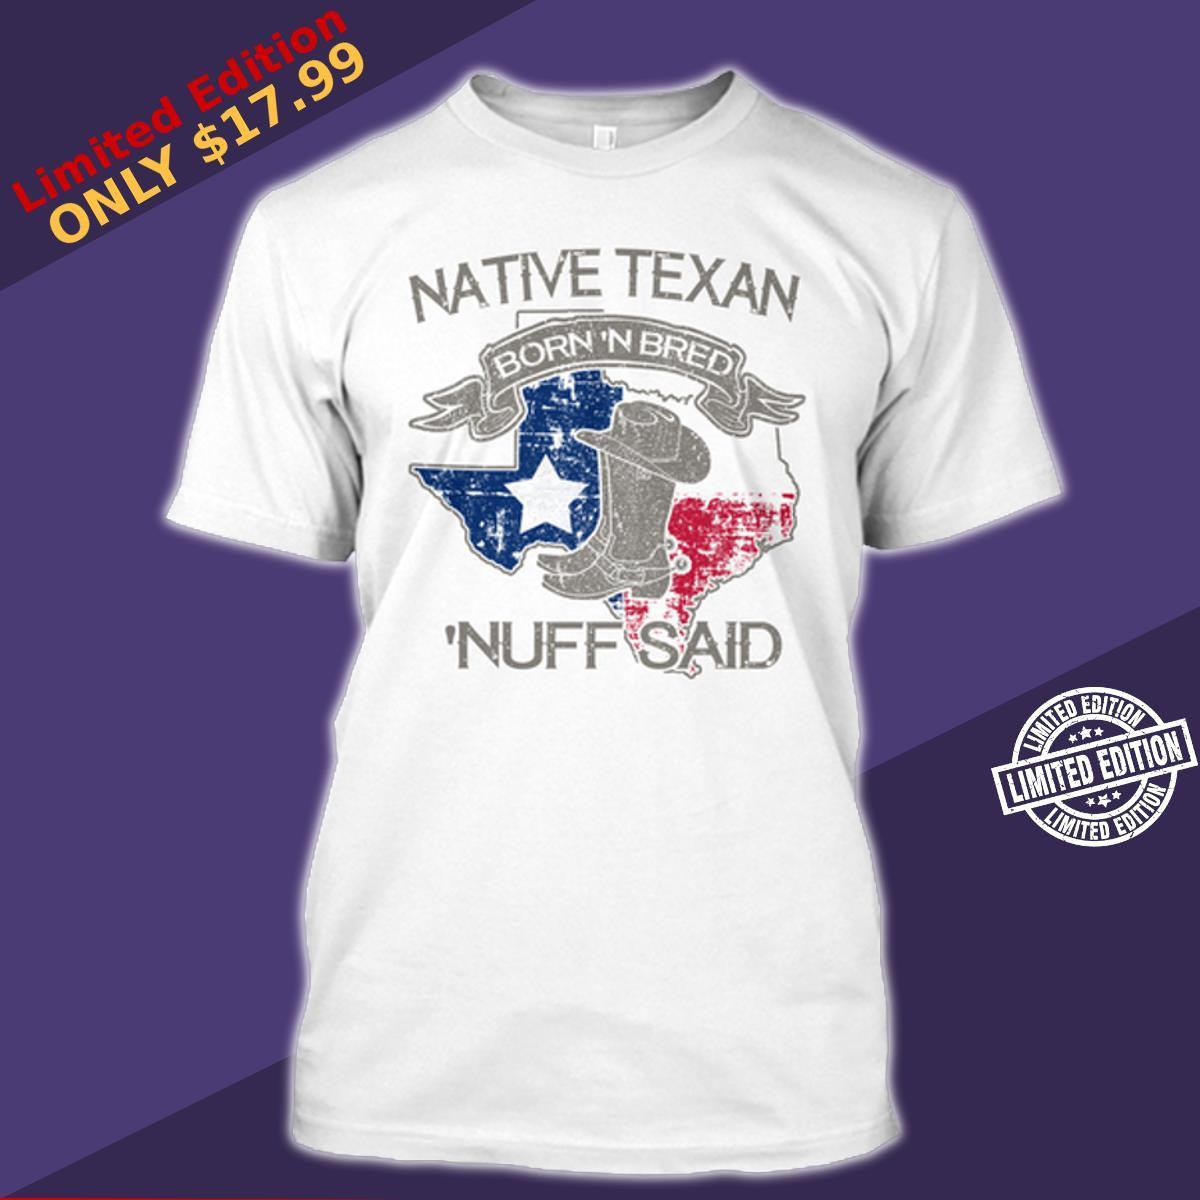 Native texan born 'n bred 'nuff said shirt